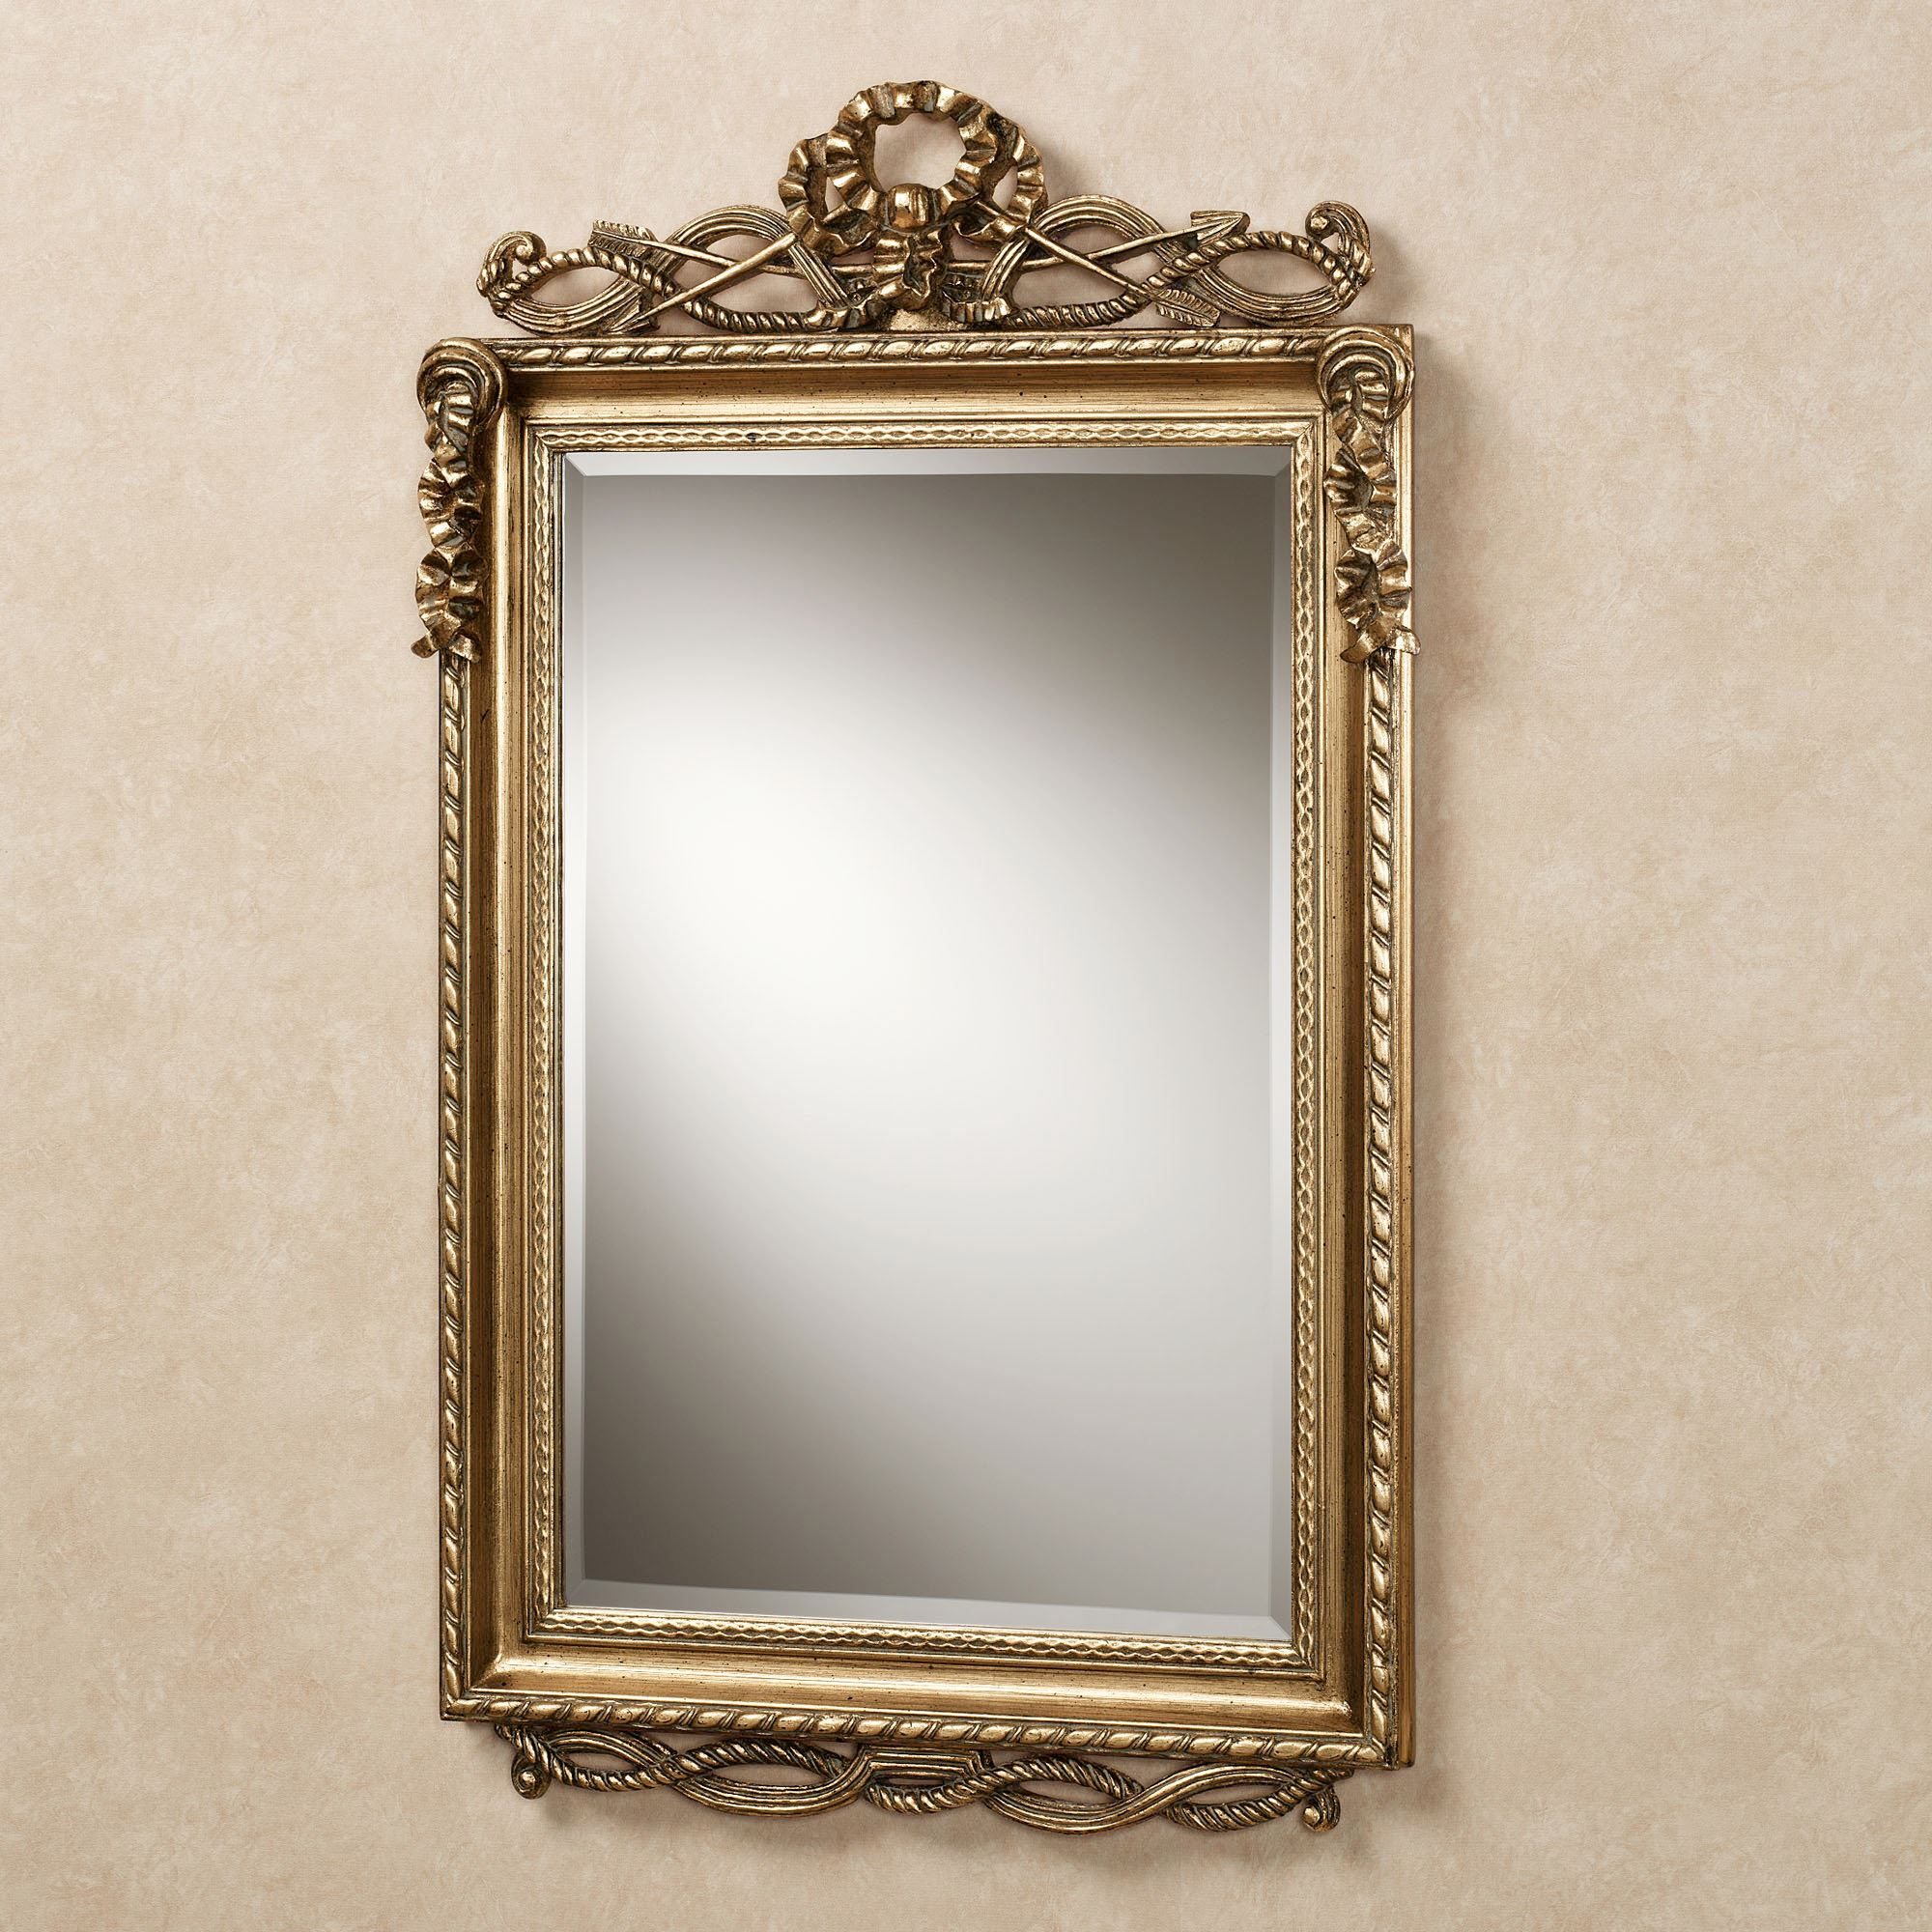 Lancaster Twist Design Rectangular Wall Mirror Throughout Traditional Metal Wall Mirrors (View 11 of 30)